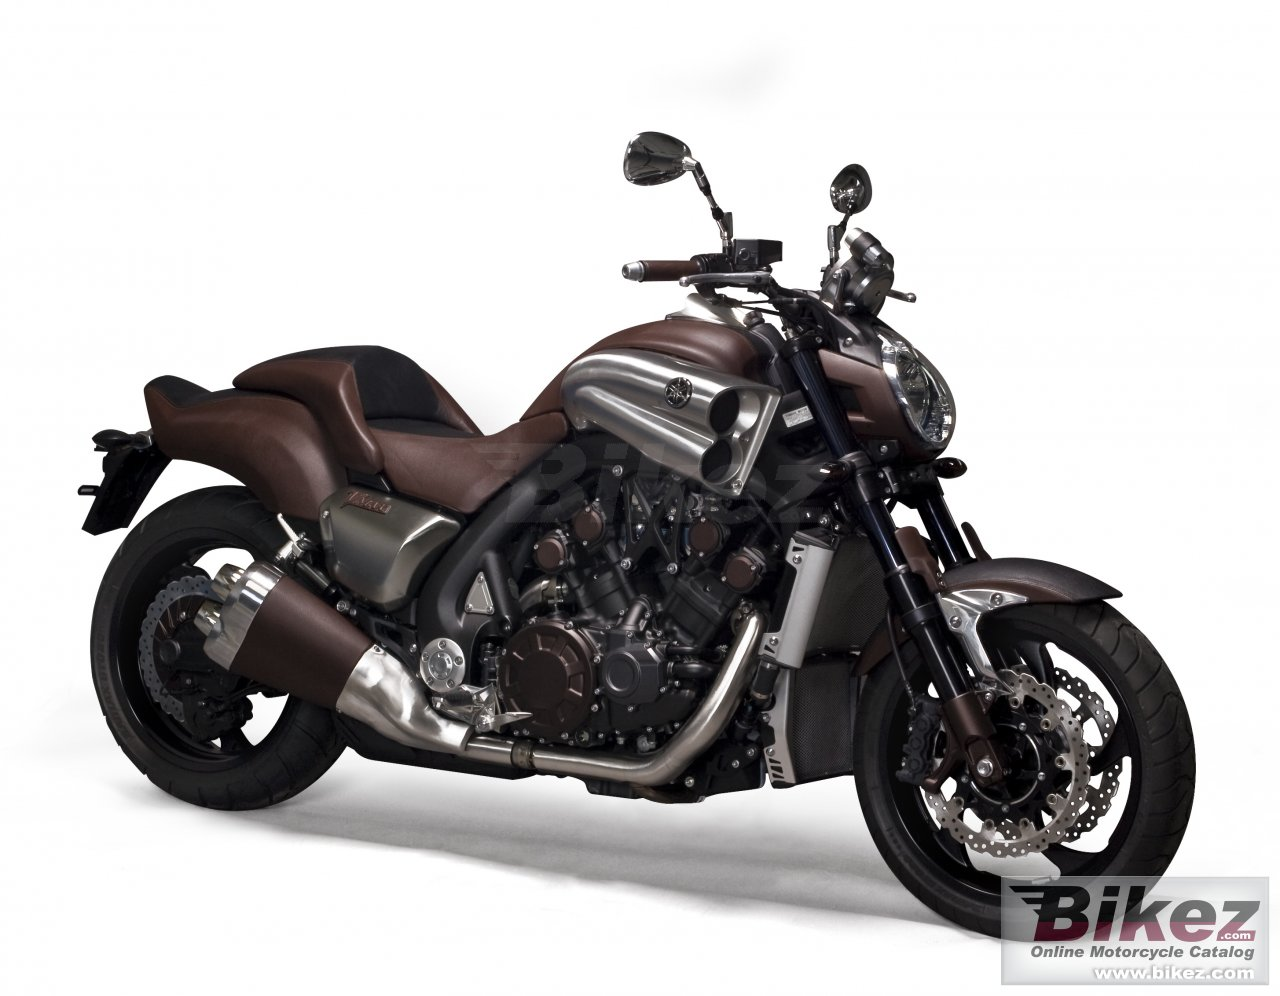 Big Yamaha v-max hermes picture and wallpaper from Bikez.com